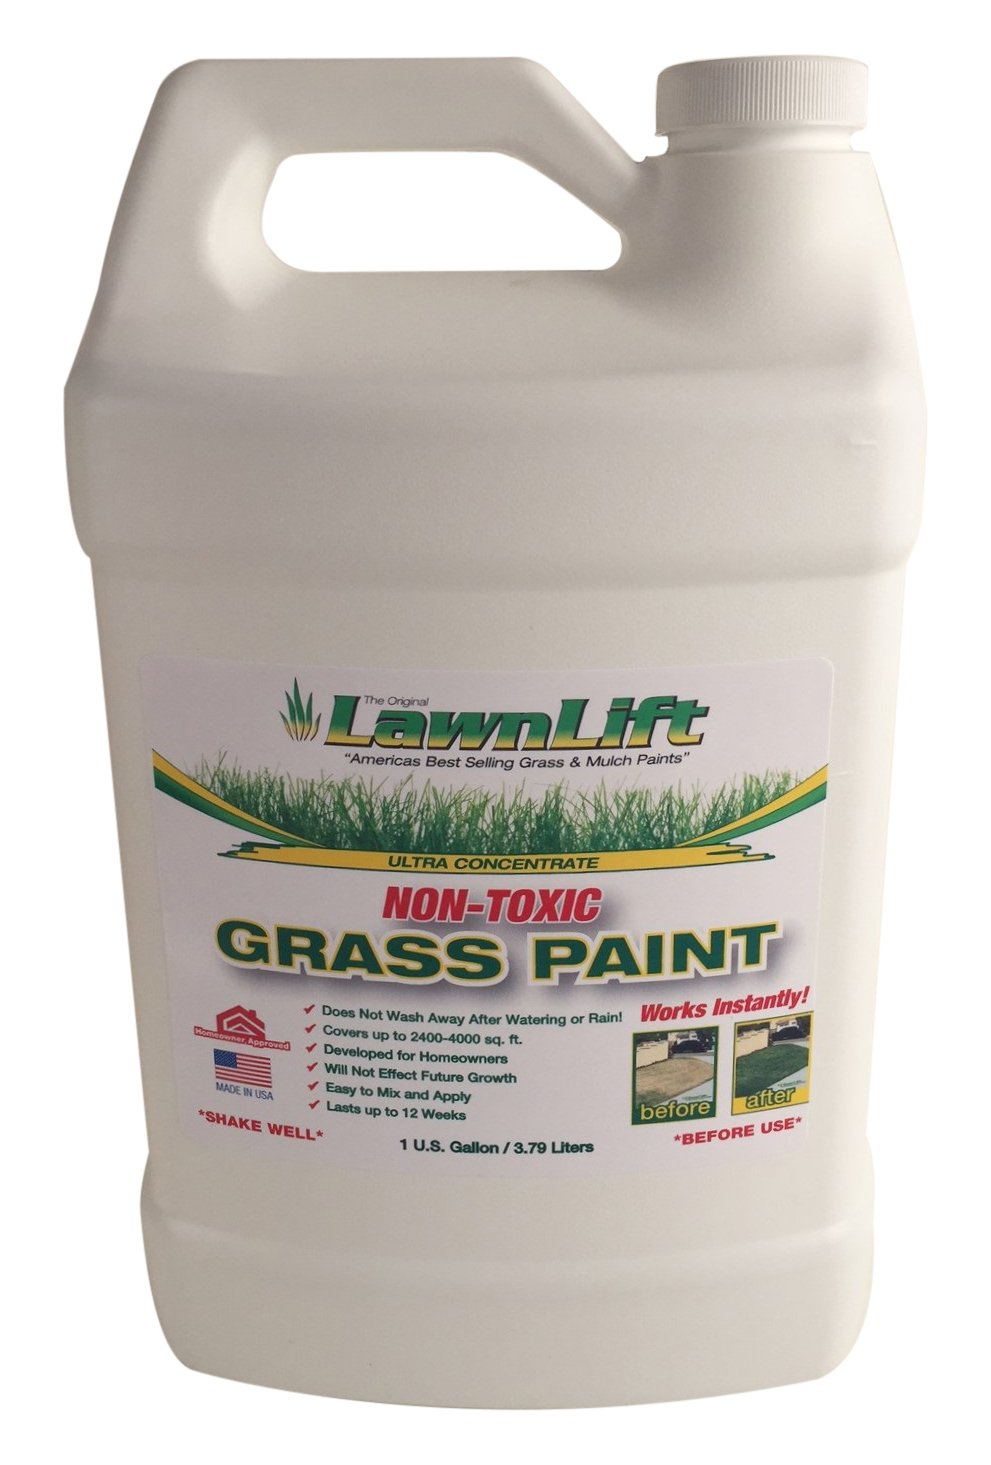 Lawn Paint Concentrated Lawn Paint (6 Units), 1 gallon by Lawn Paint